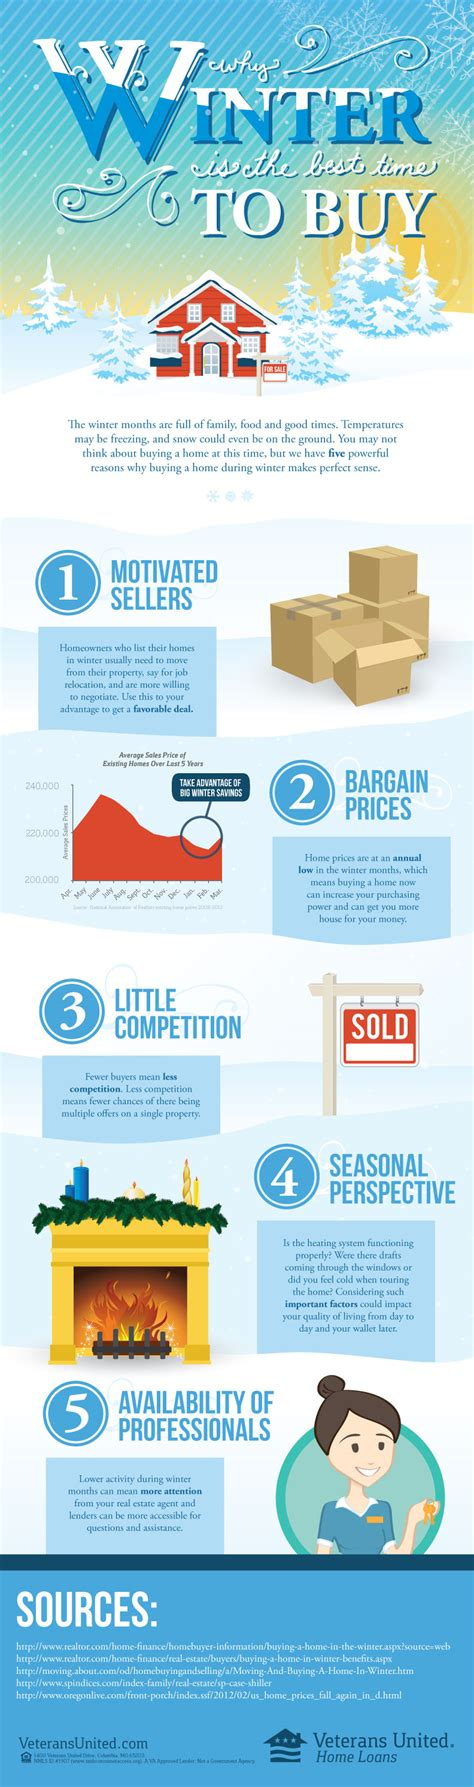 buying a house in the winter why winter is the right time to buy infographic